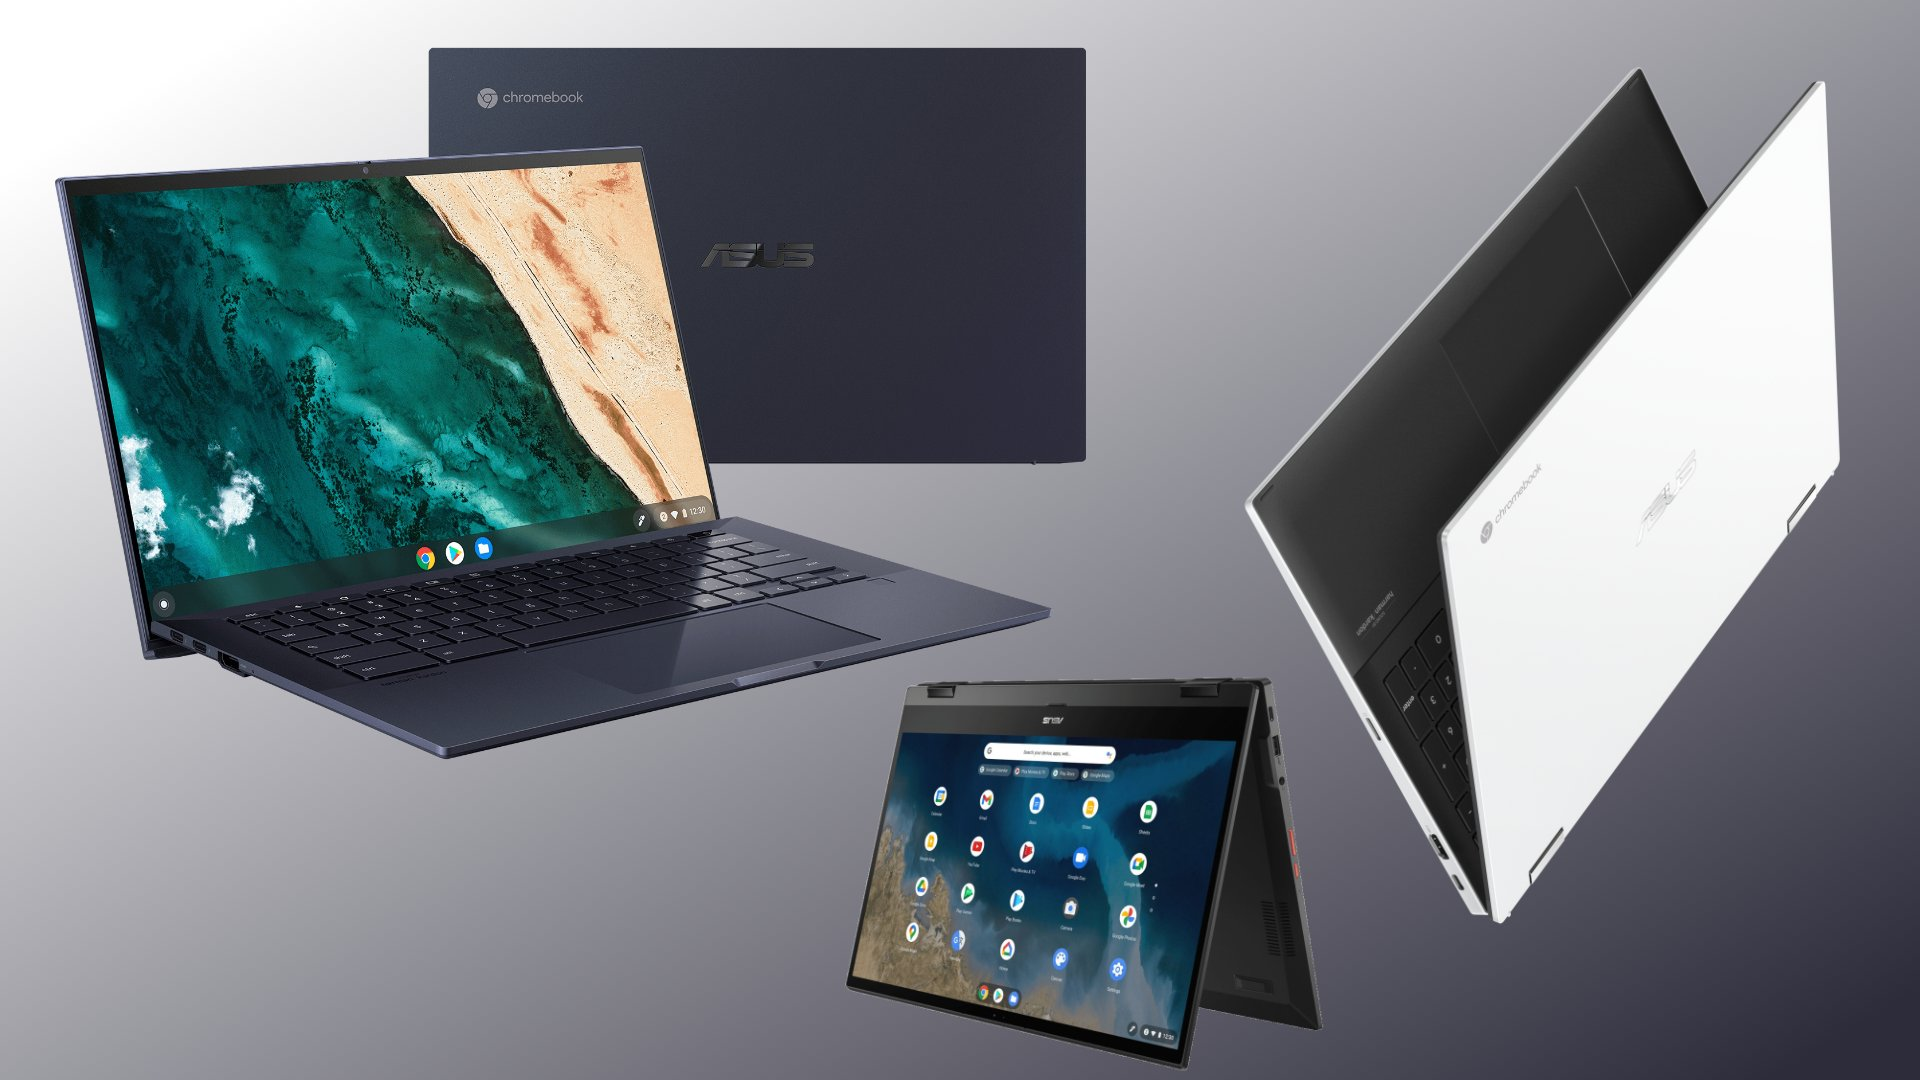 ASUS unveils 3 new Chromebooks at CES 2021 with Intel Evo and AMD on board